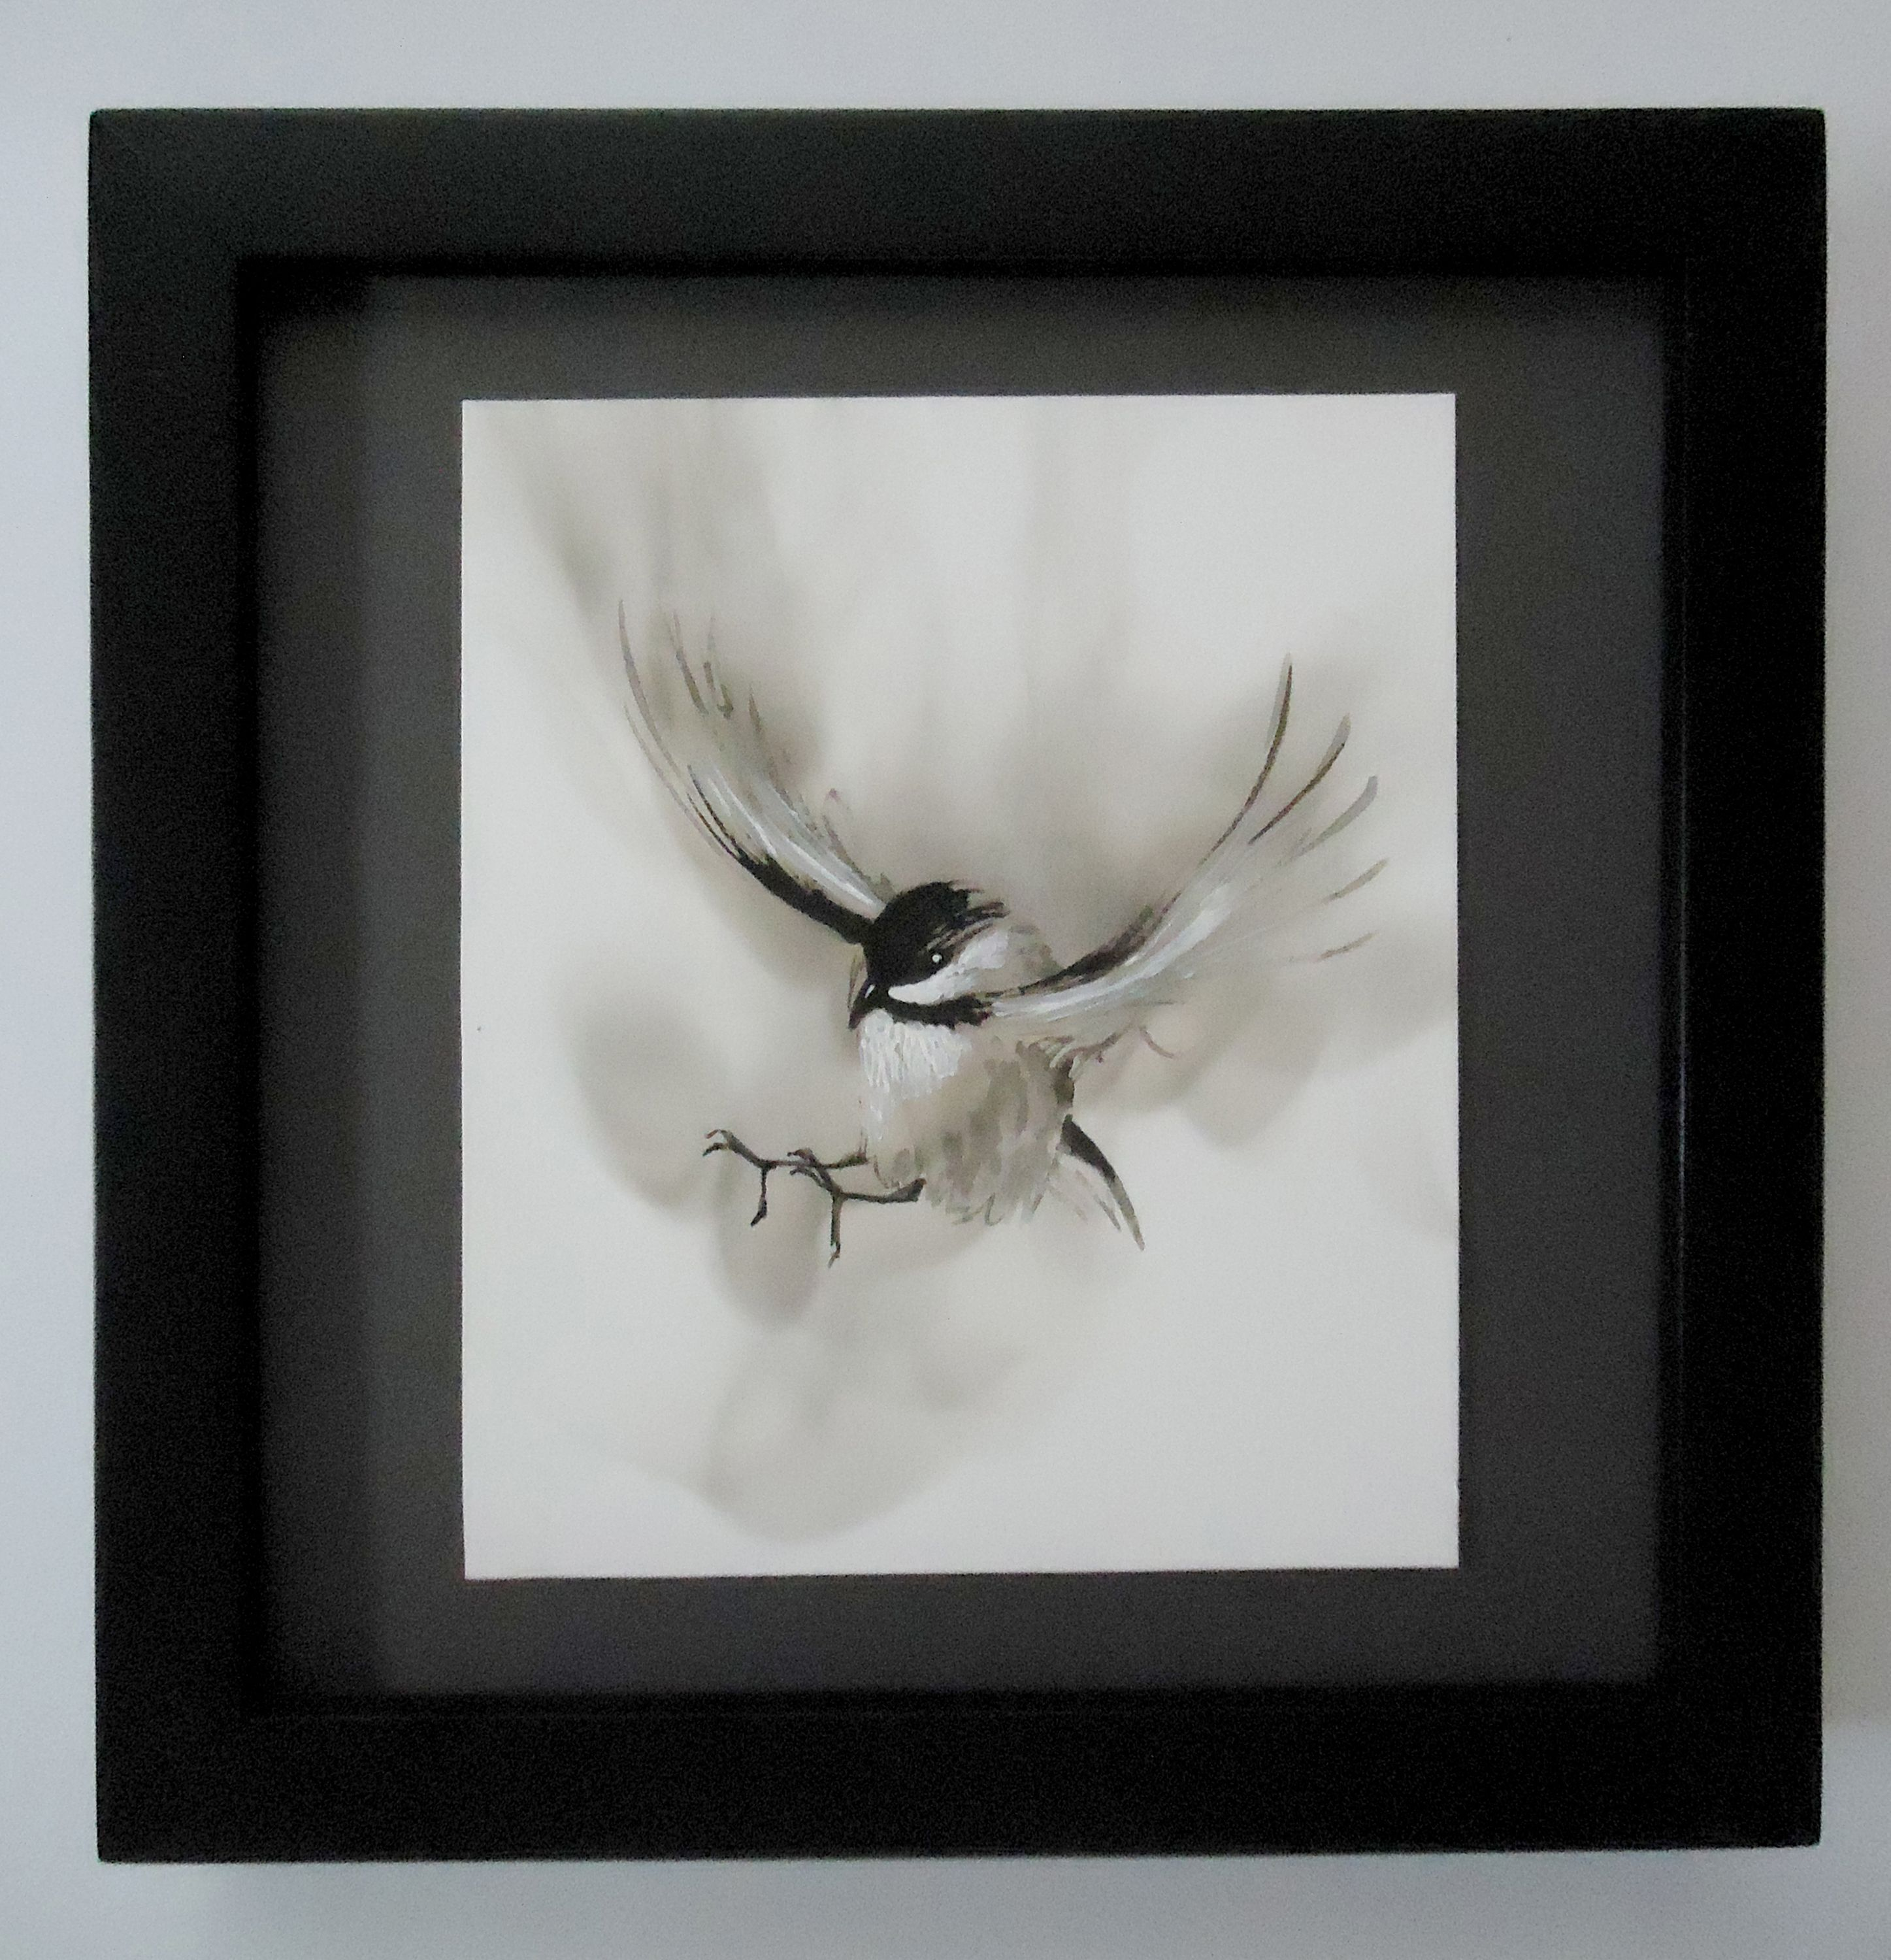 Janis_Fowler_Flight of the Chickadee_Austin_Art.jpg